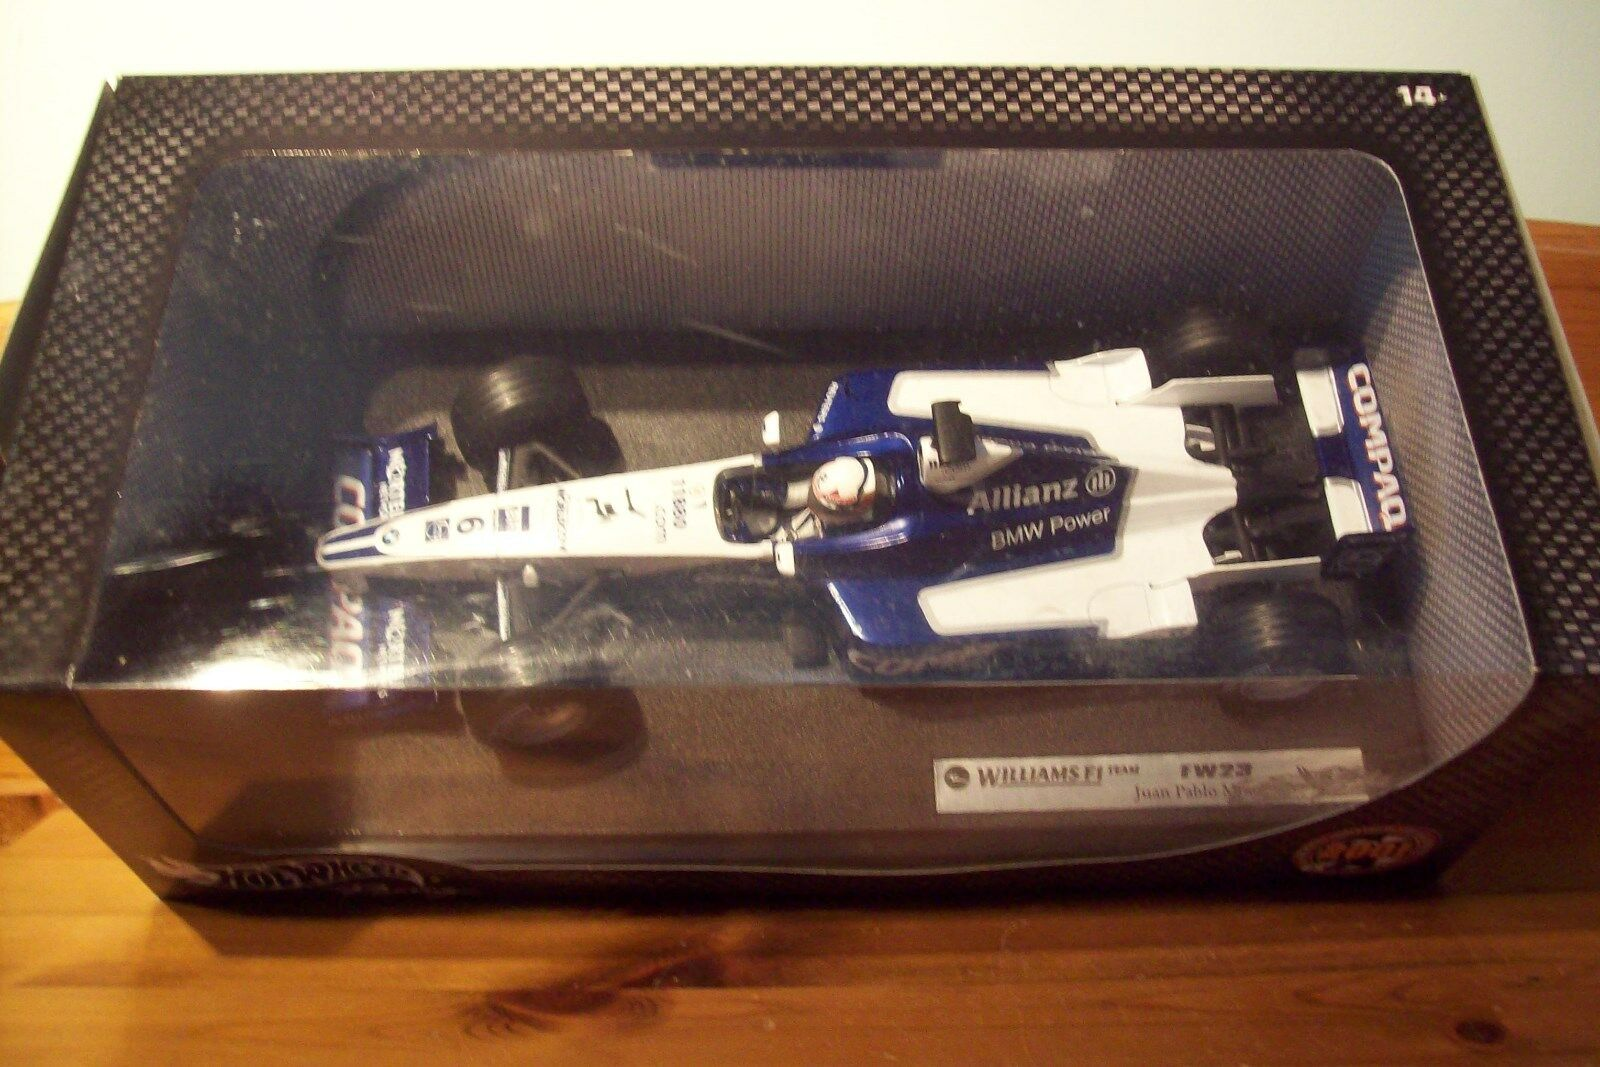 1 18 WILLIAMS F1 BMW FW23 JUAN PABLO MONTOYA 2001 LAUNC